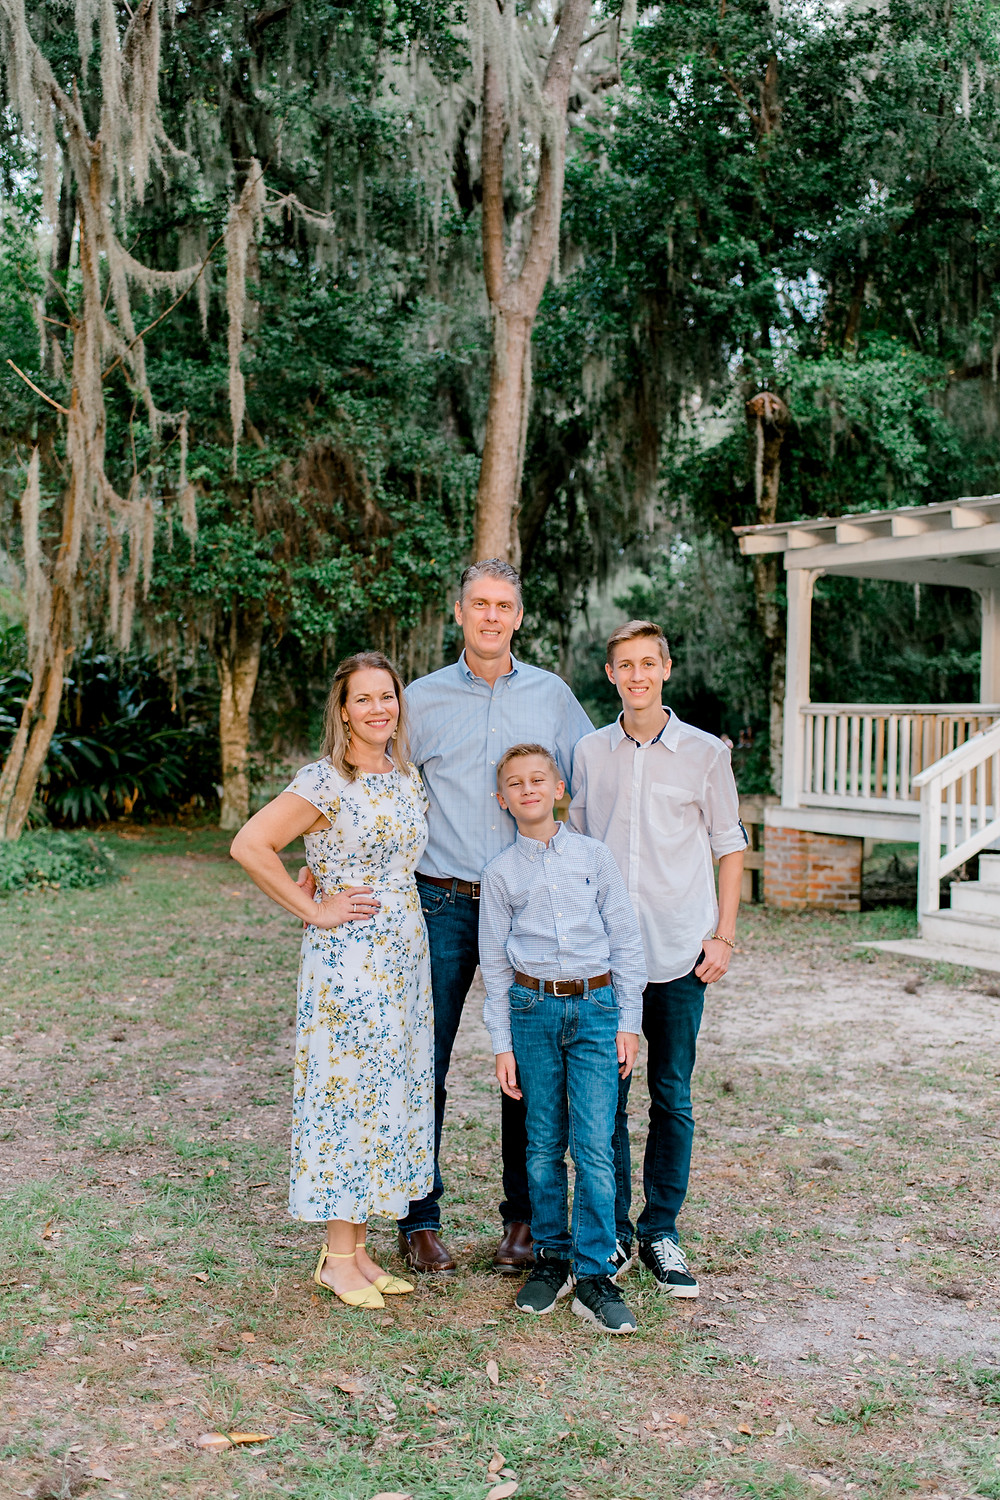 Family Photography at Alpine Groves Park | Colleen Lindhurst Photography - maternity, newborn, and family photographer | Jacksonville, St. Augustine, Nocatee, and Ponte Vedra Photographer